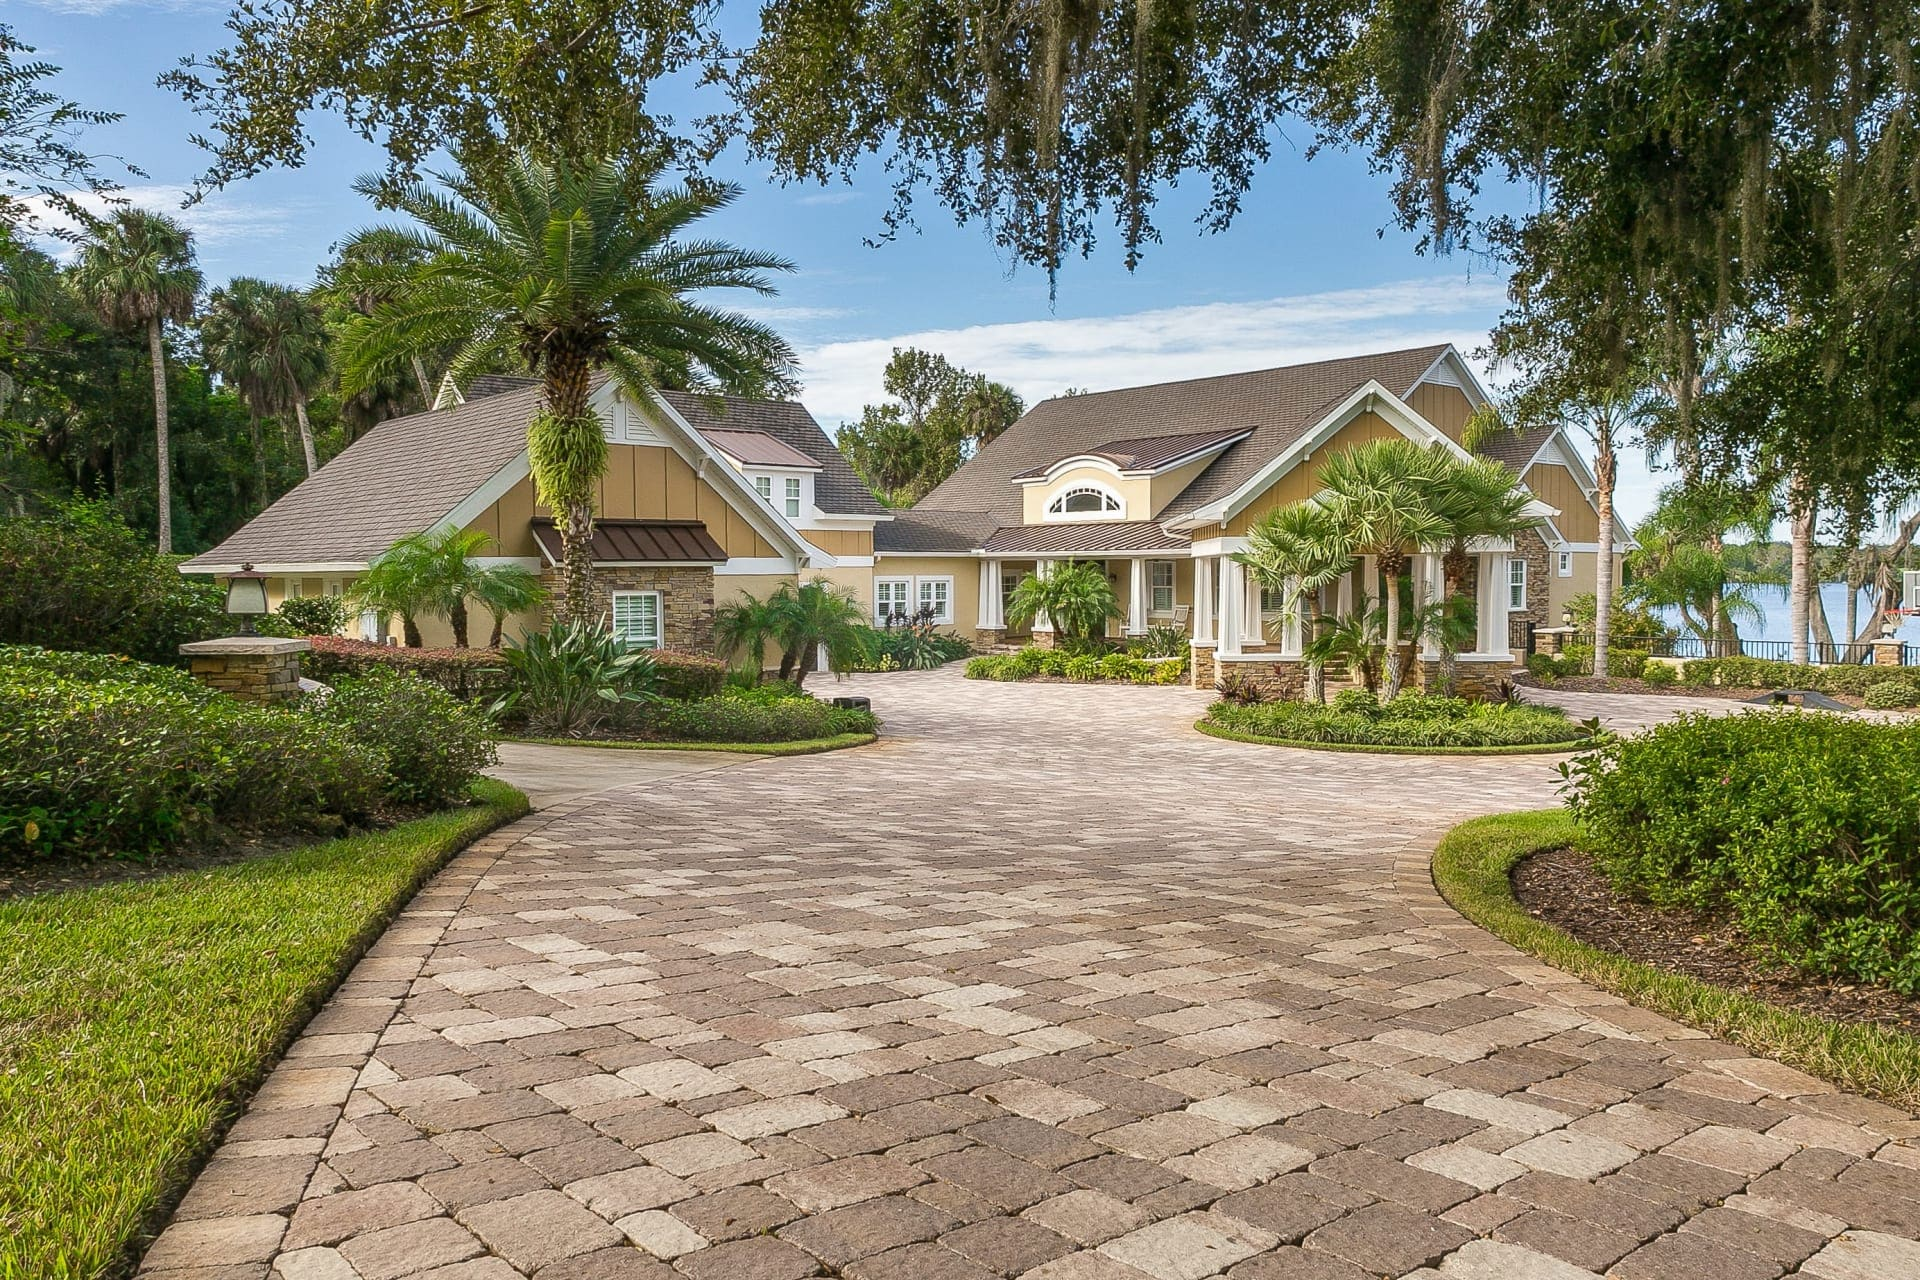 What To Know Before Buying a Waterfront Property